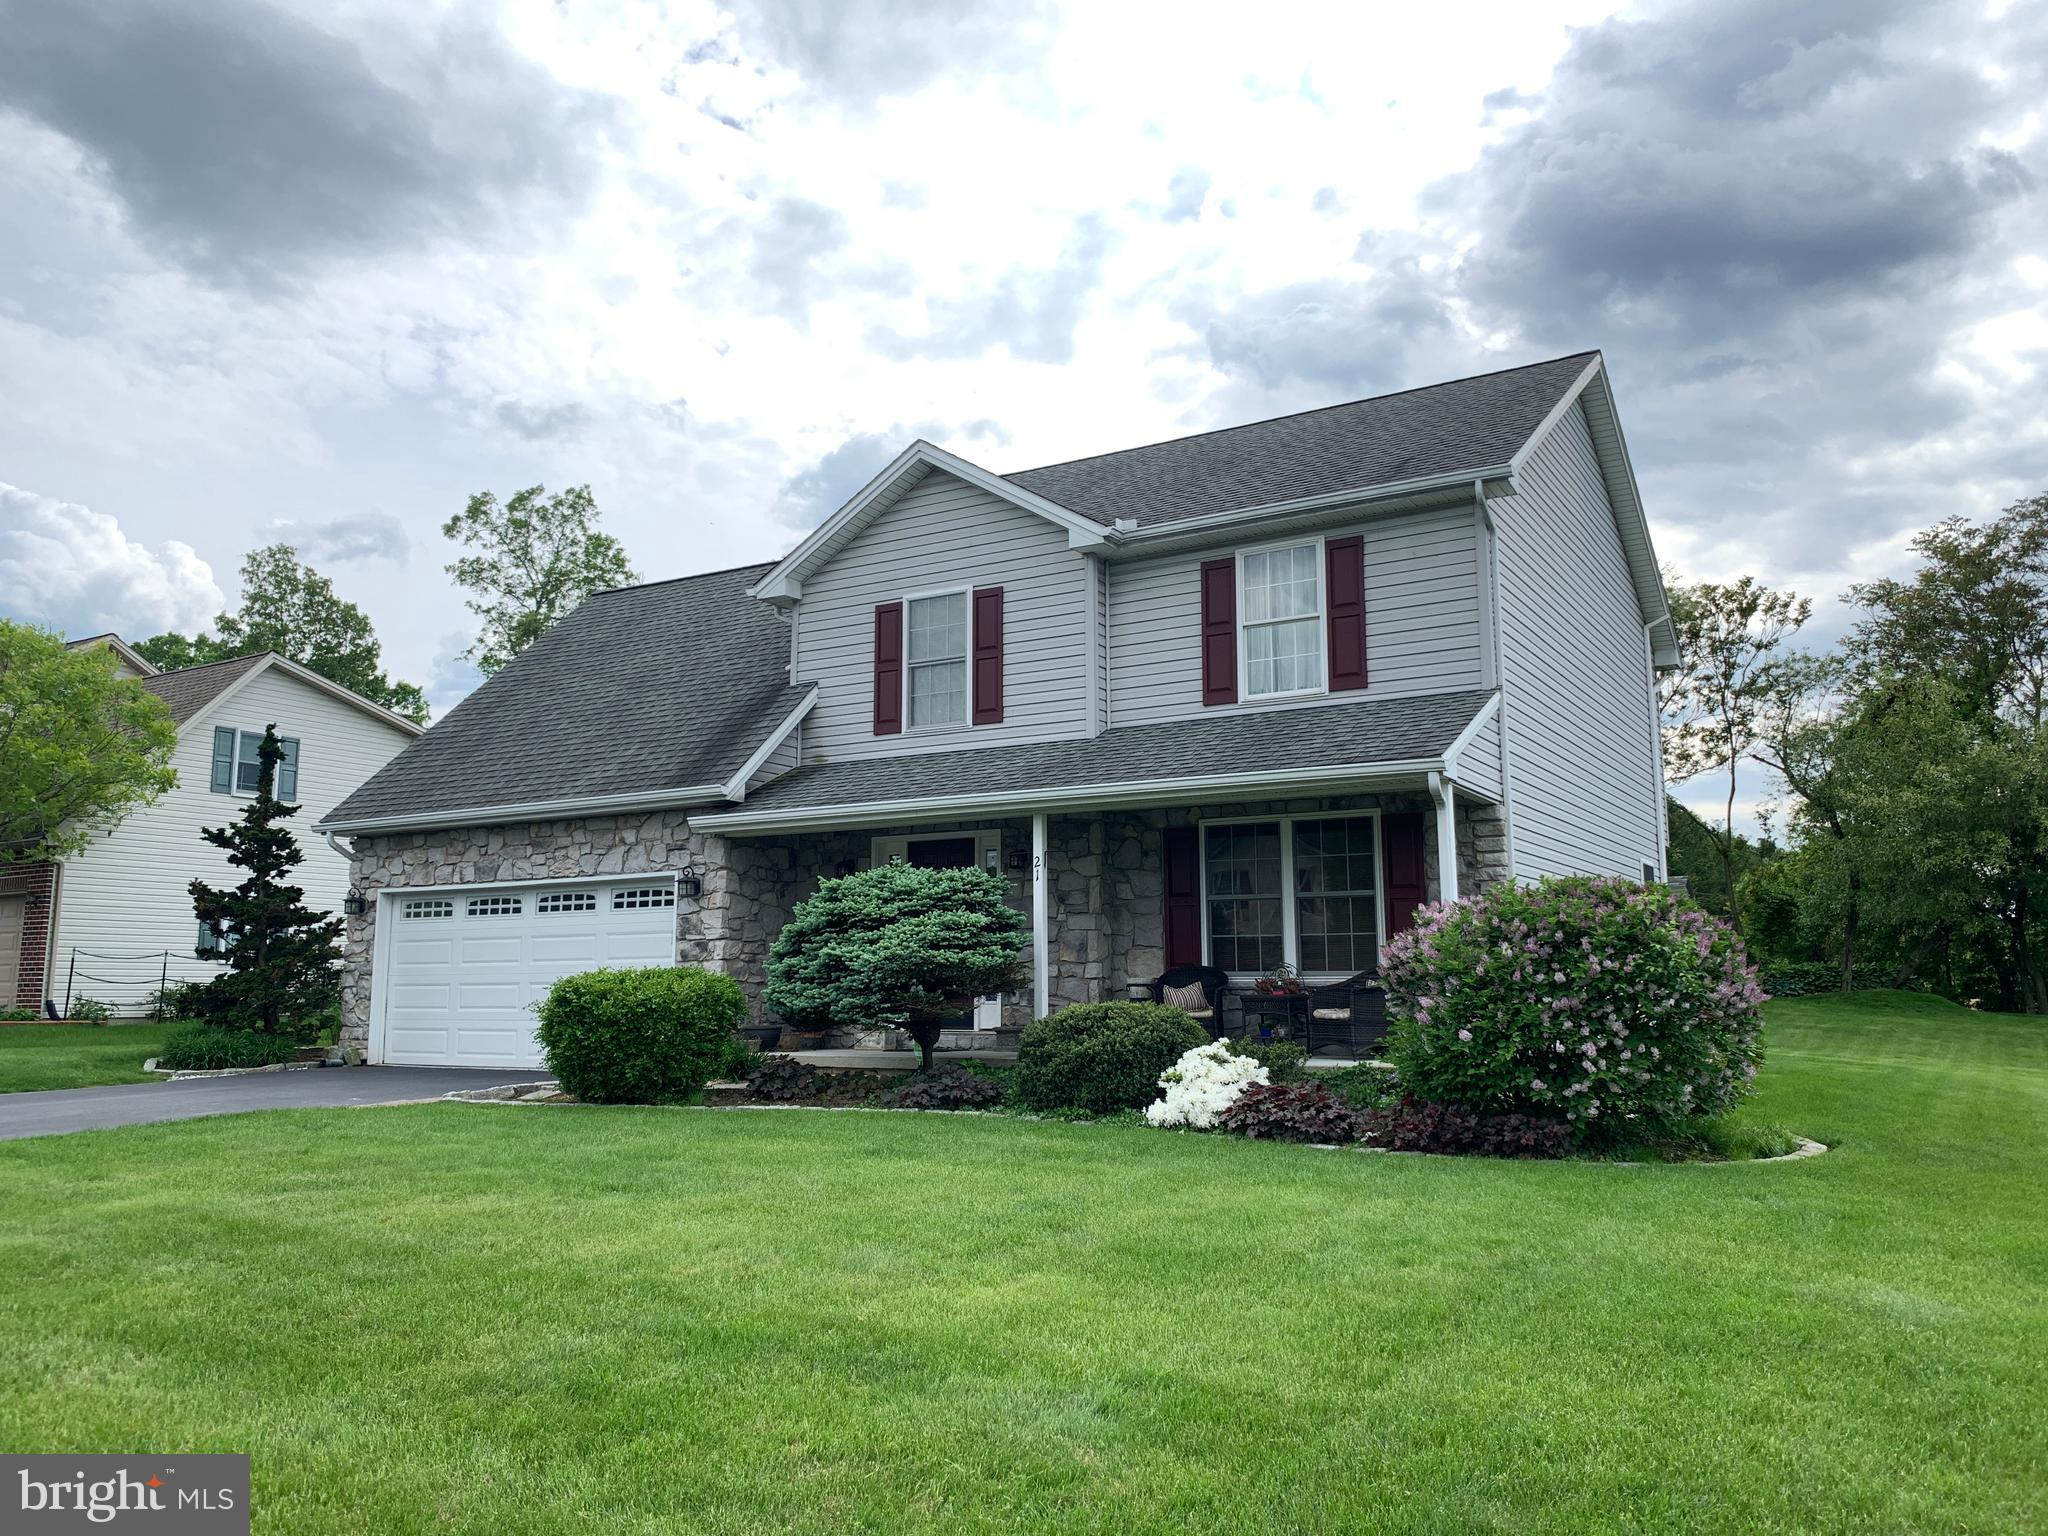 21 WESTGATE DRIVE, MOUNT HOLLY SPRINGS, PA 17065